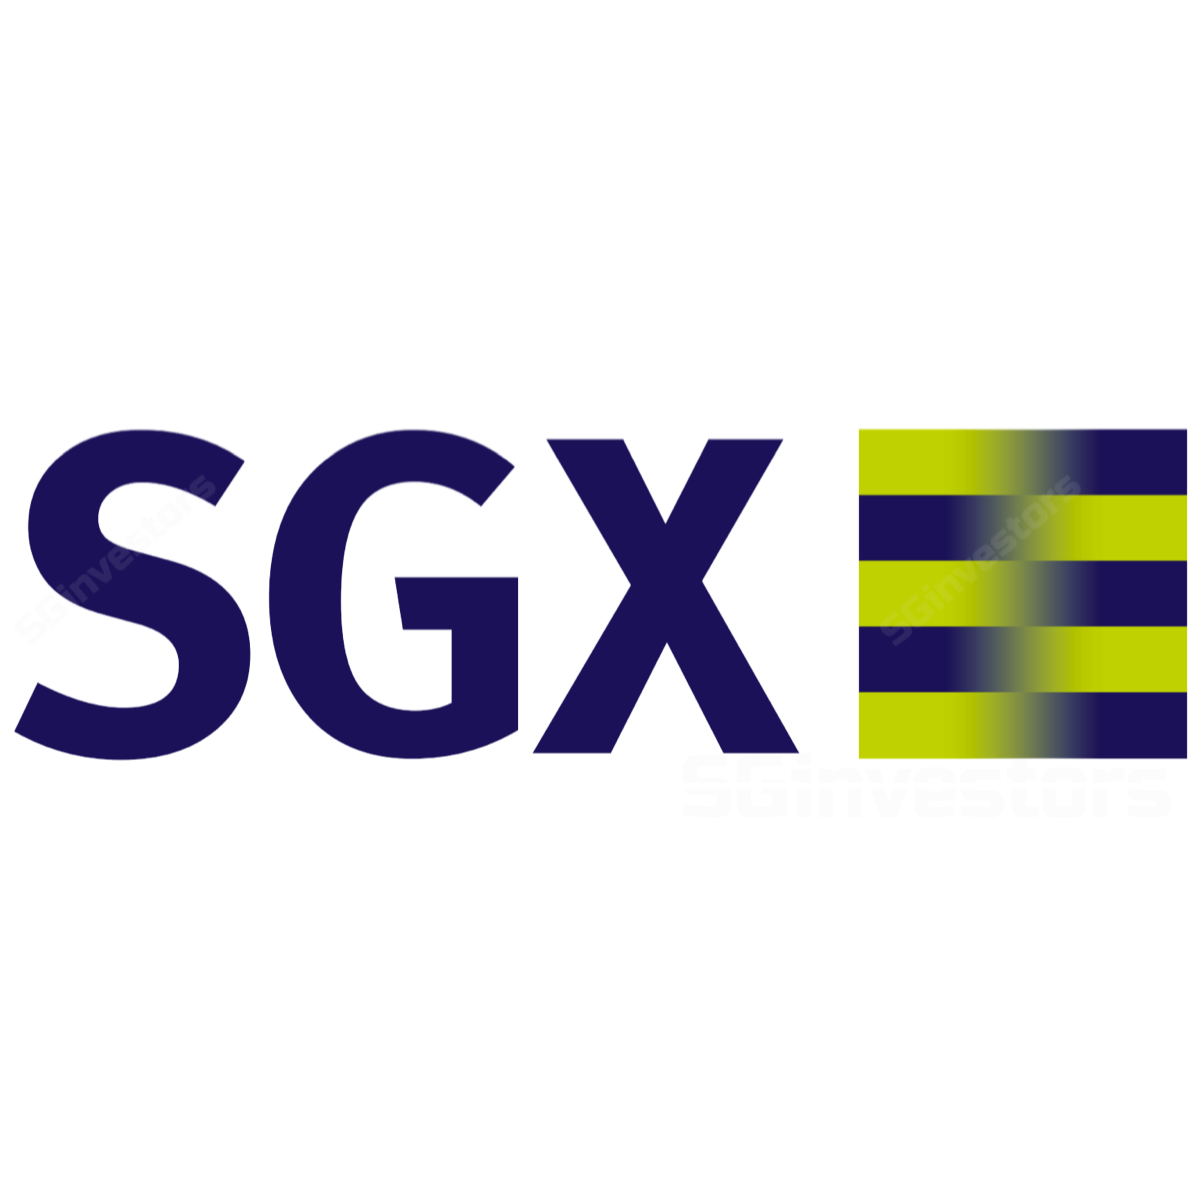 Singapore Exchange (SGX SP) - DBS Vickers 2017-04-21: Softer 3QFY17 earnings